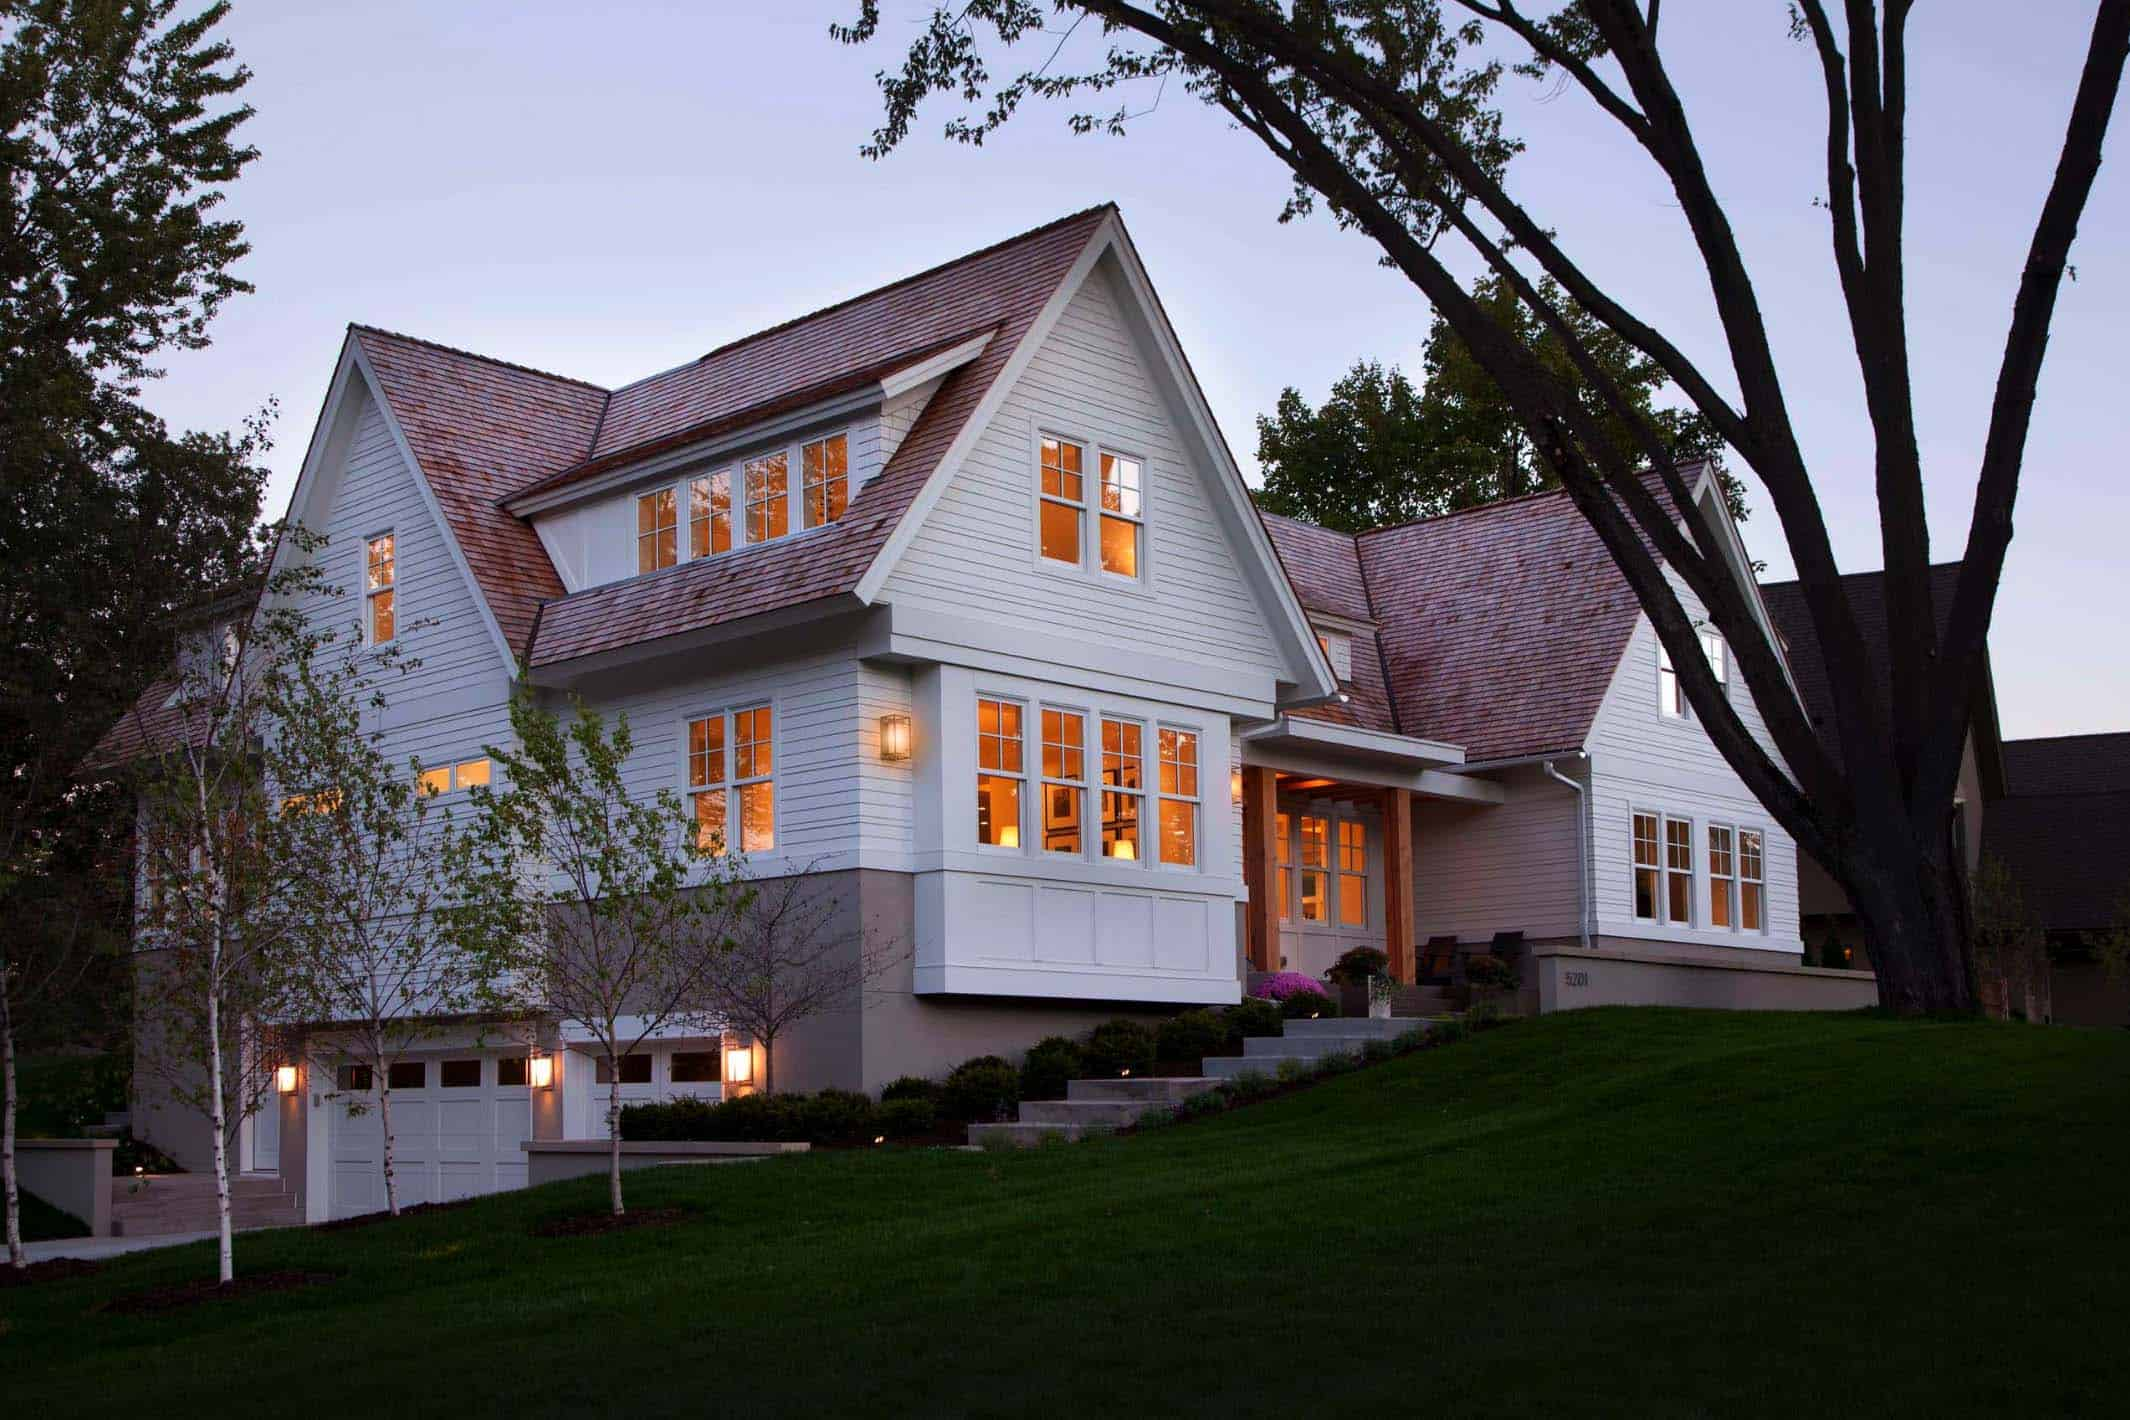 modern-shingle-style-home-front-exterior